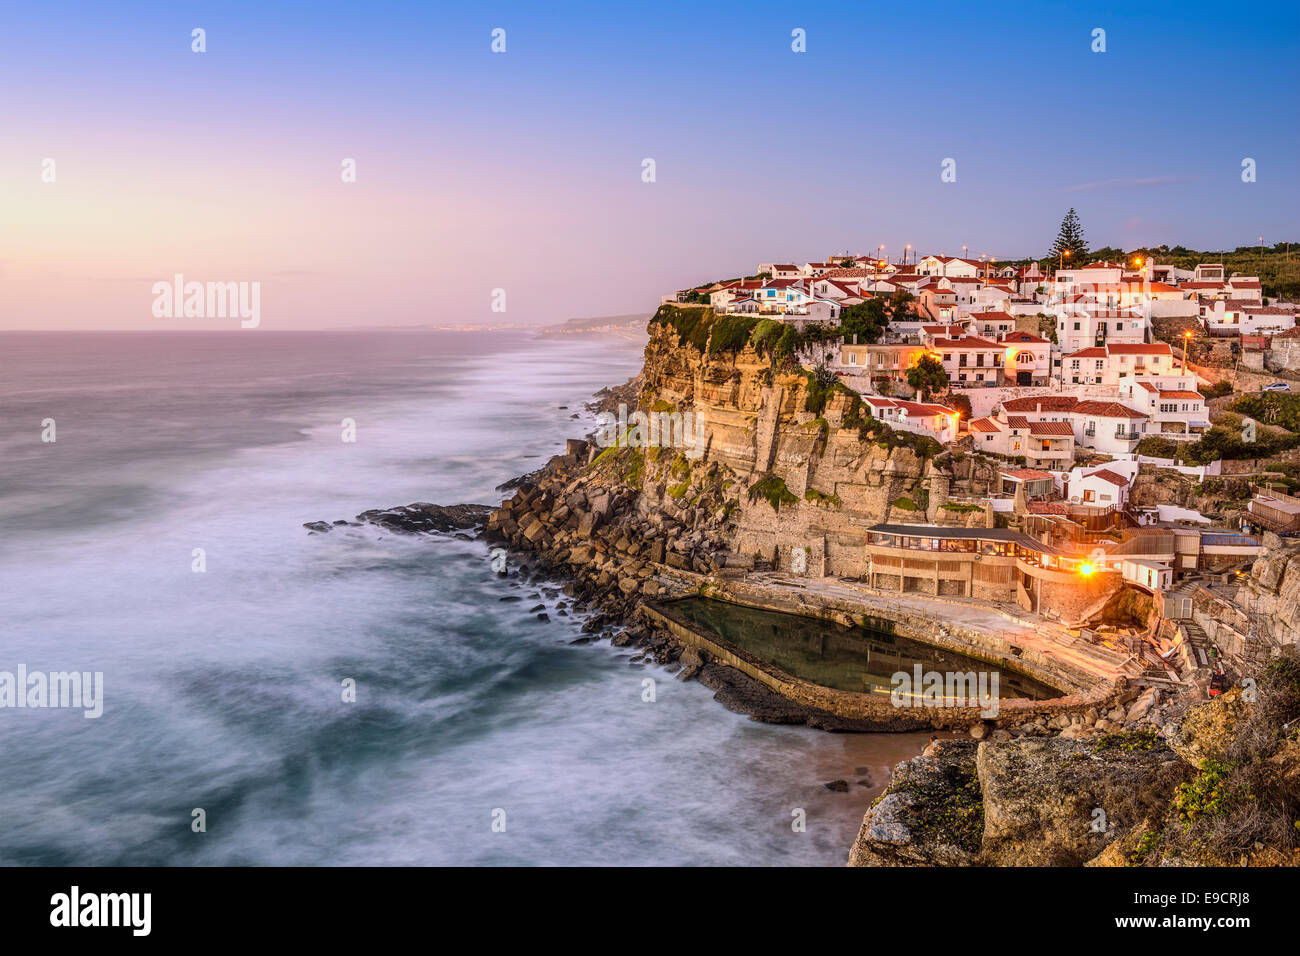 Azenhas Do Mar, Sintra, Portugal townscape on the coast. - Stock Image